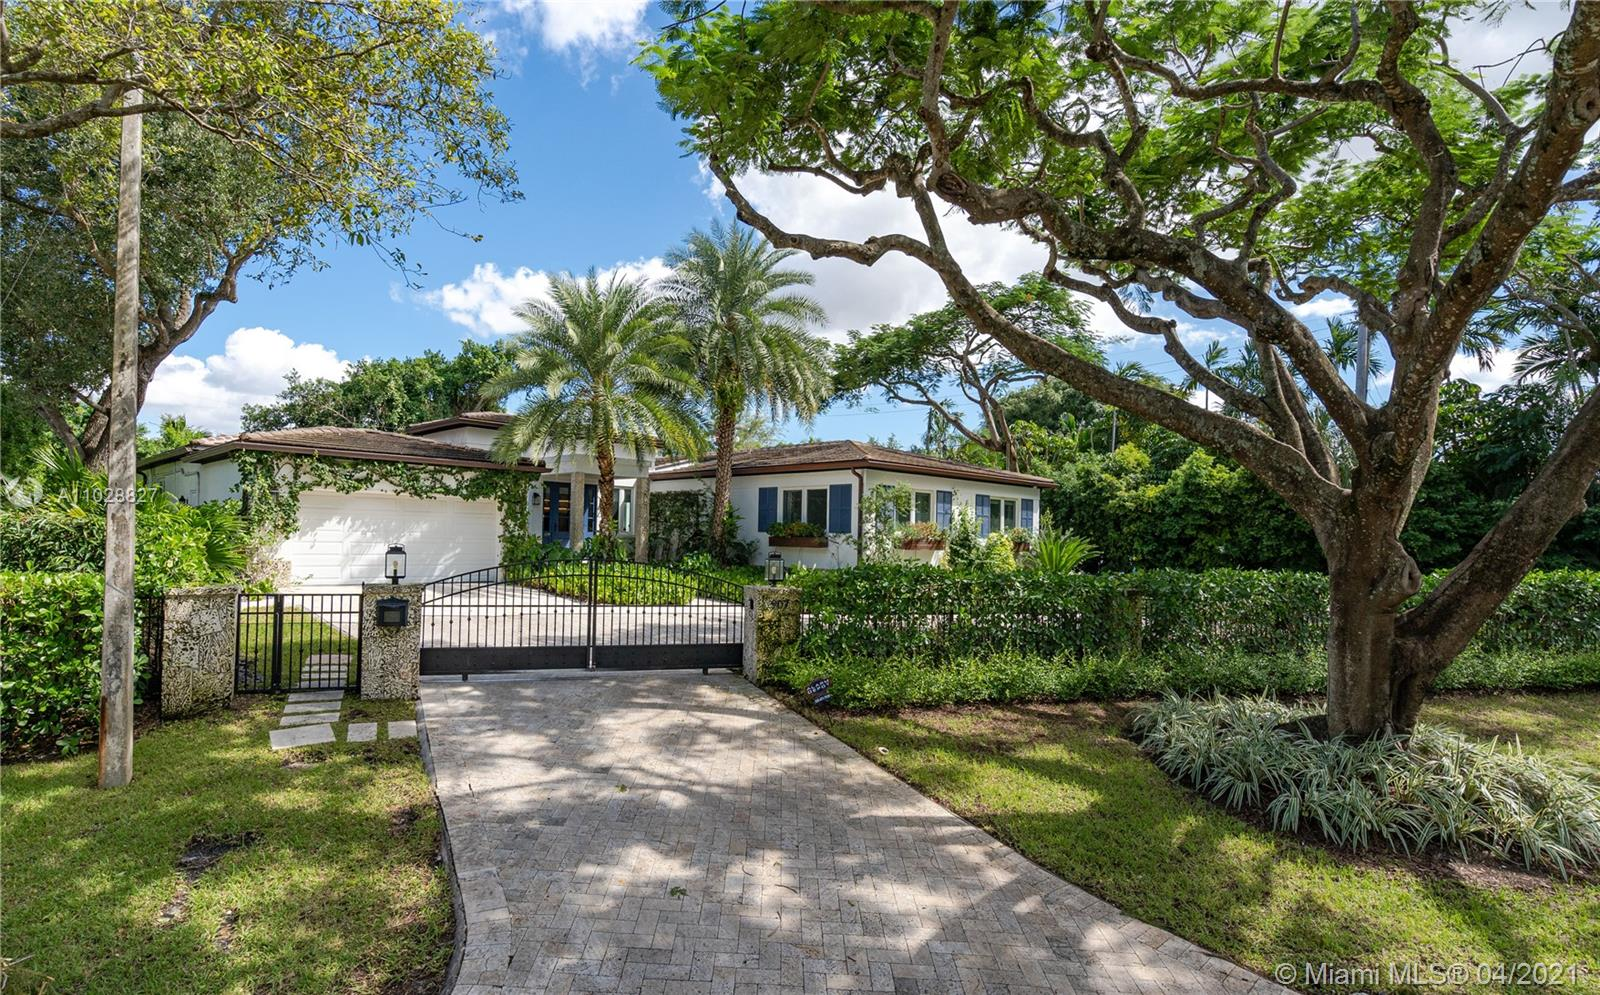 South Miami - 907 Jeronimo Dr, Coral Gables, FL 33146